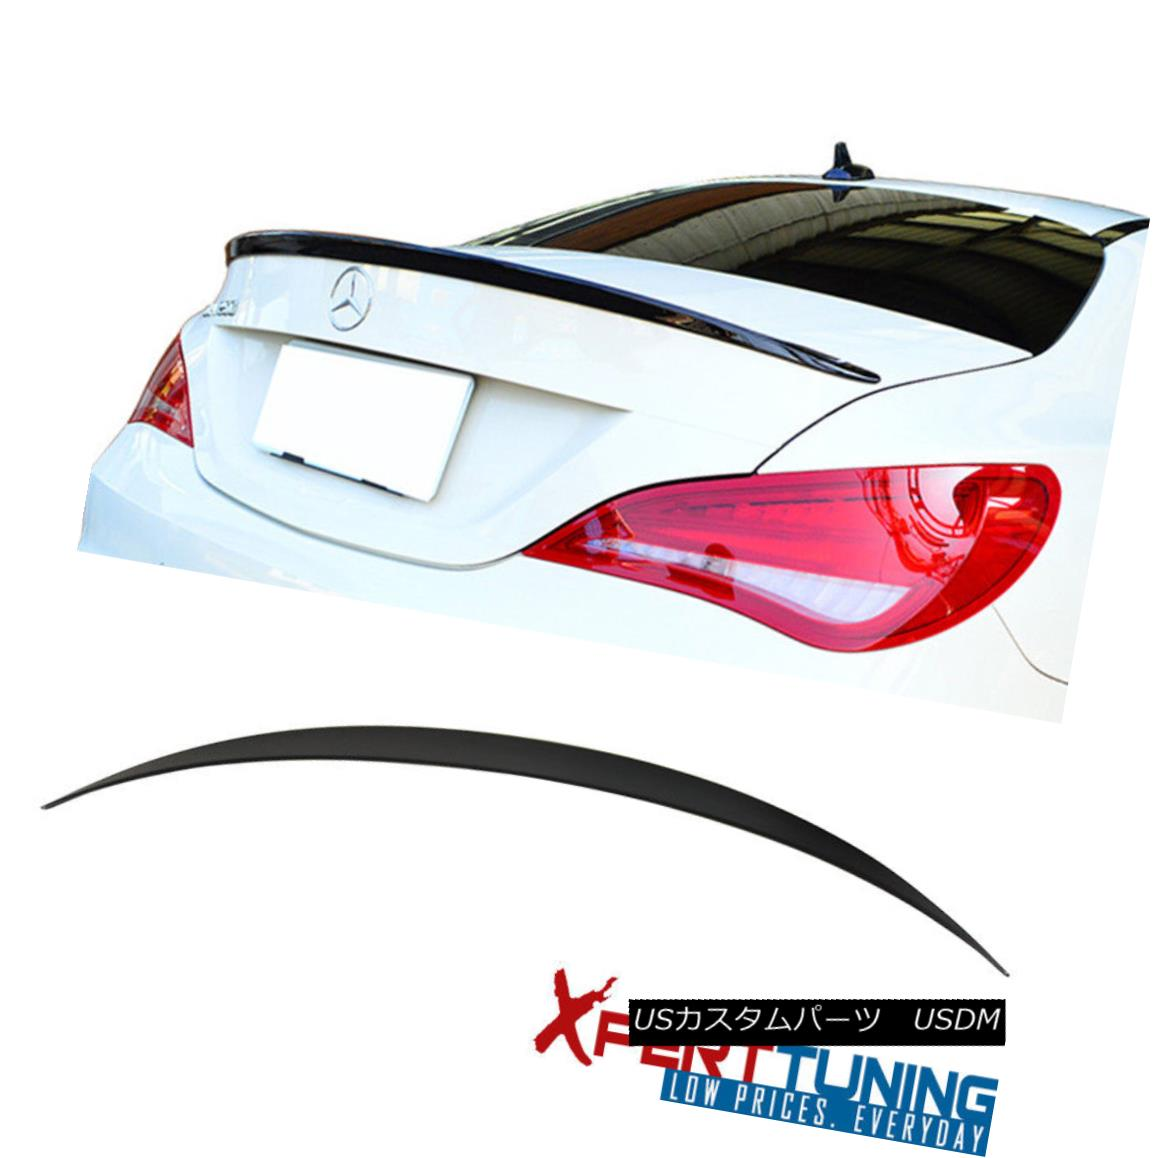 Fits 01-07 C Class W203 4Dr AMG Trunk Spoiler+L Type Roof Spoiler Unpainted ABS